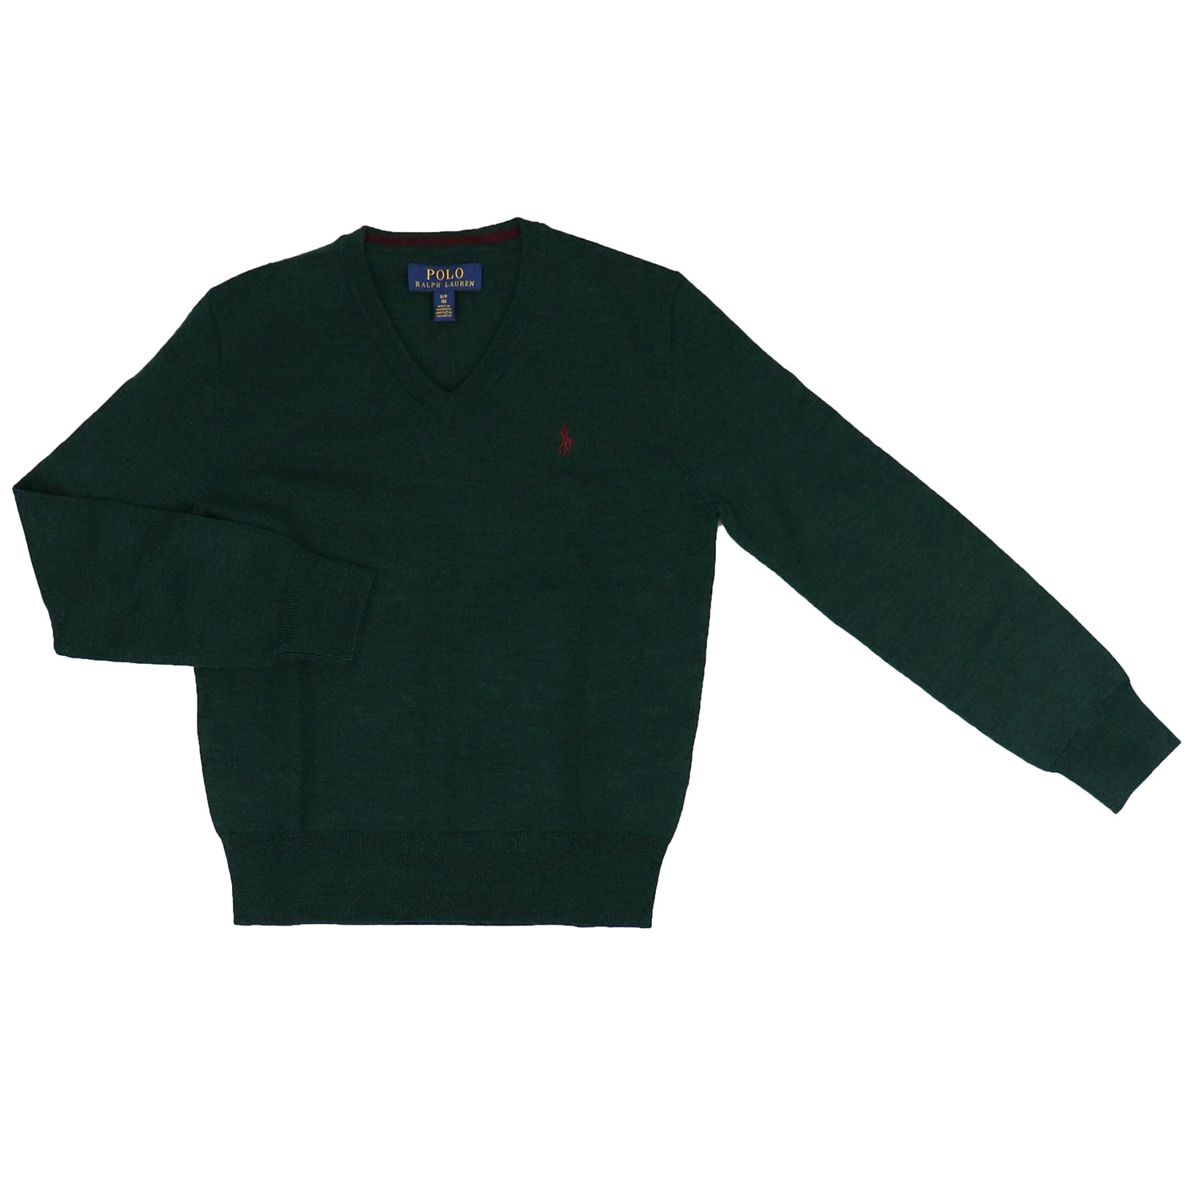 Wool pullover with V-neck and logo embroidery Green Polo Ralph Lauren